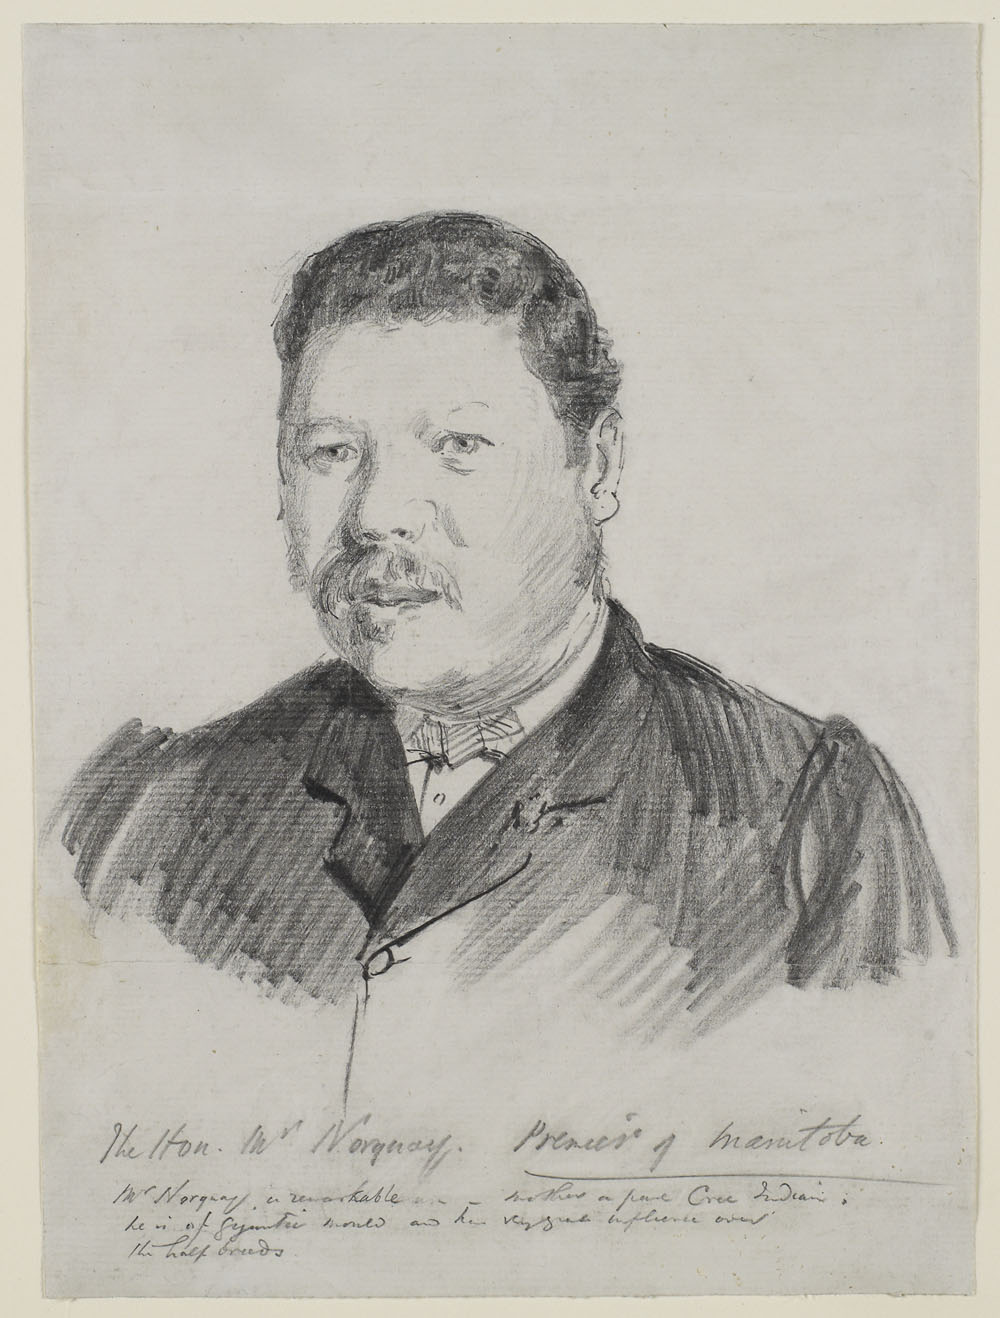 Black and white pencil sketch portrait of the head and shoulders of a man wearing a dark coloured, collared jacket.